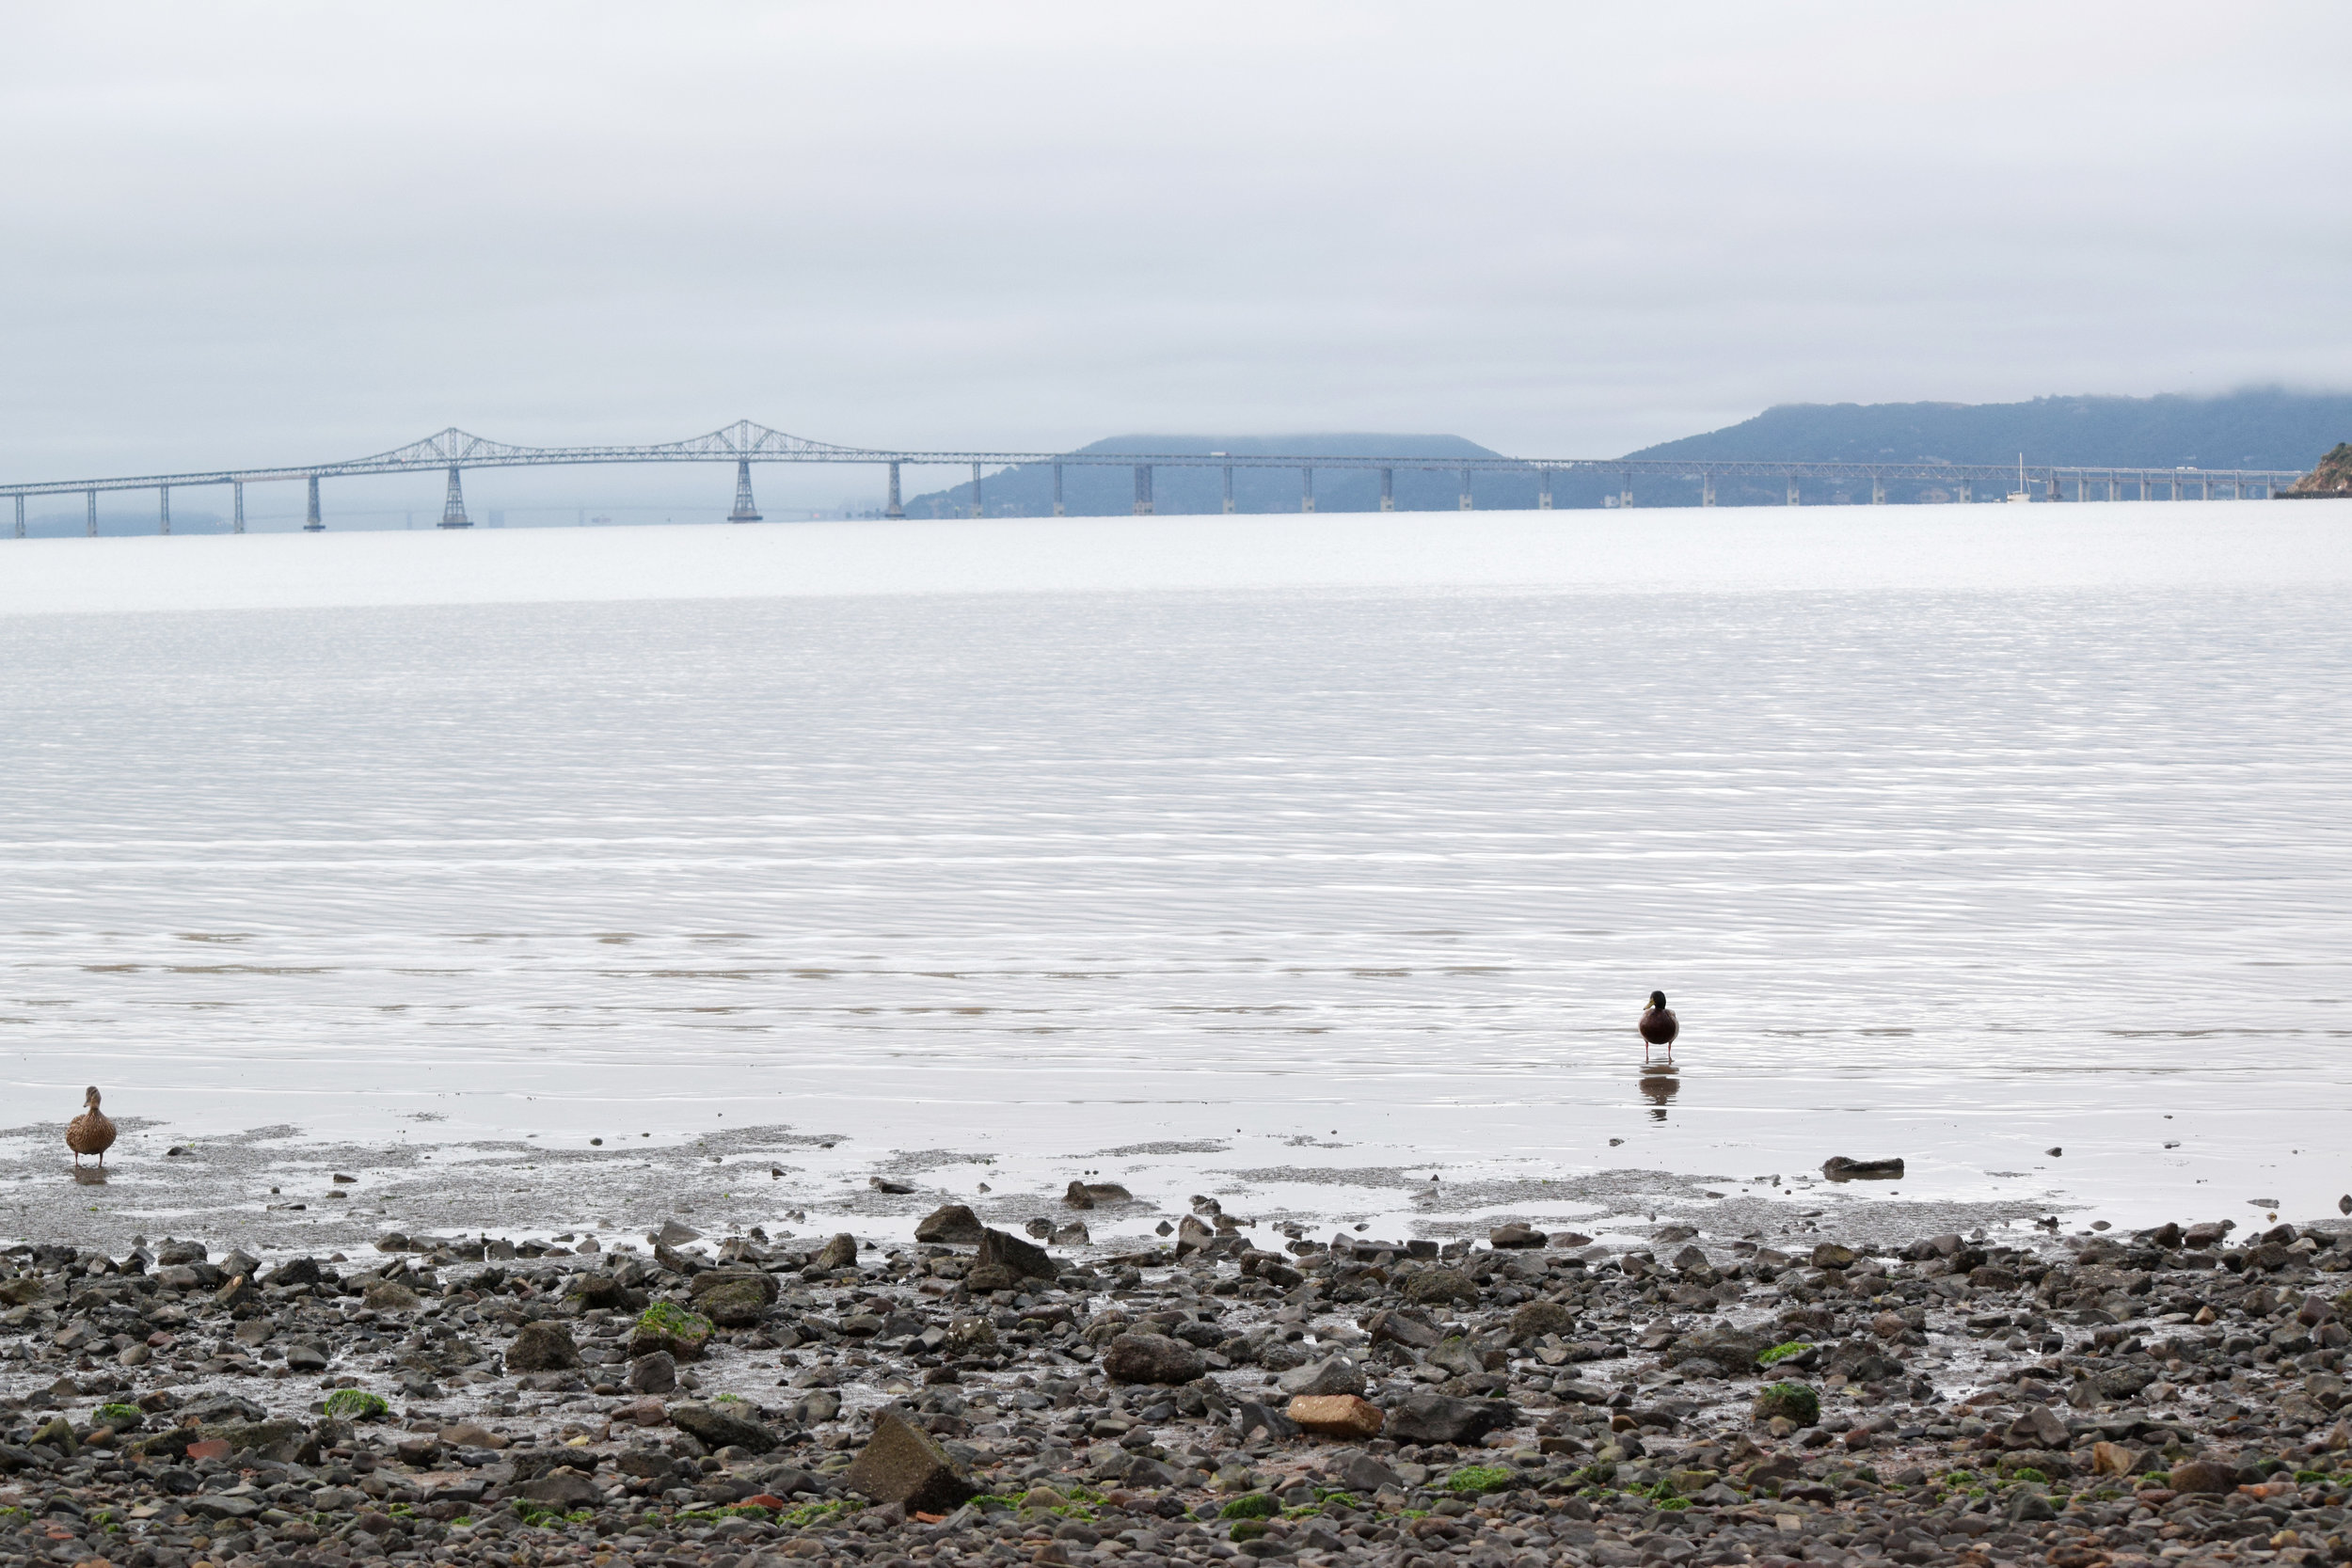 San Pablo Bay with the Richmond Bridge in the background